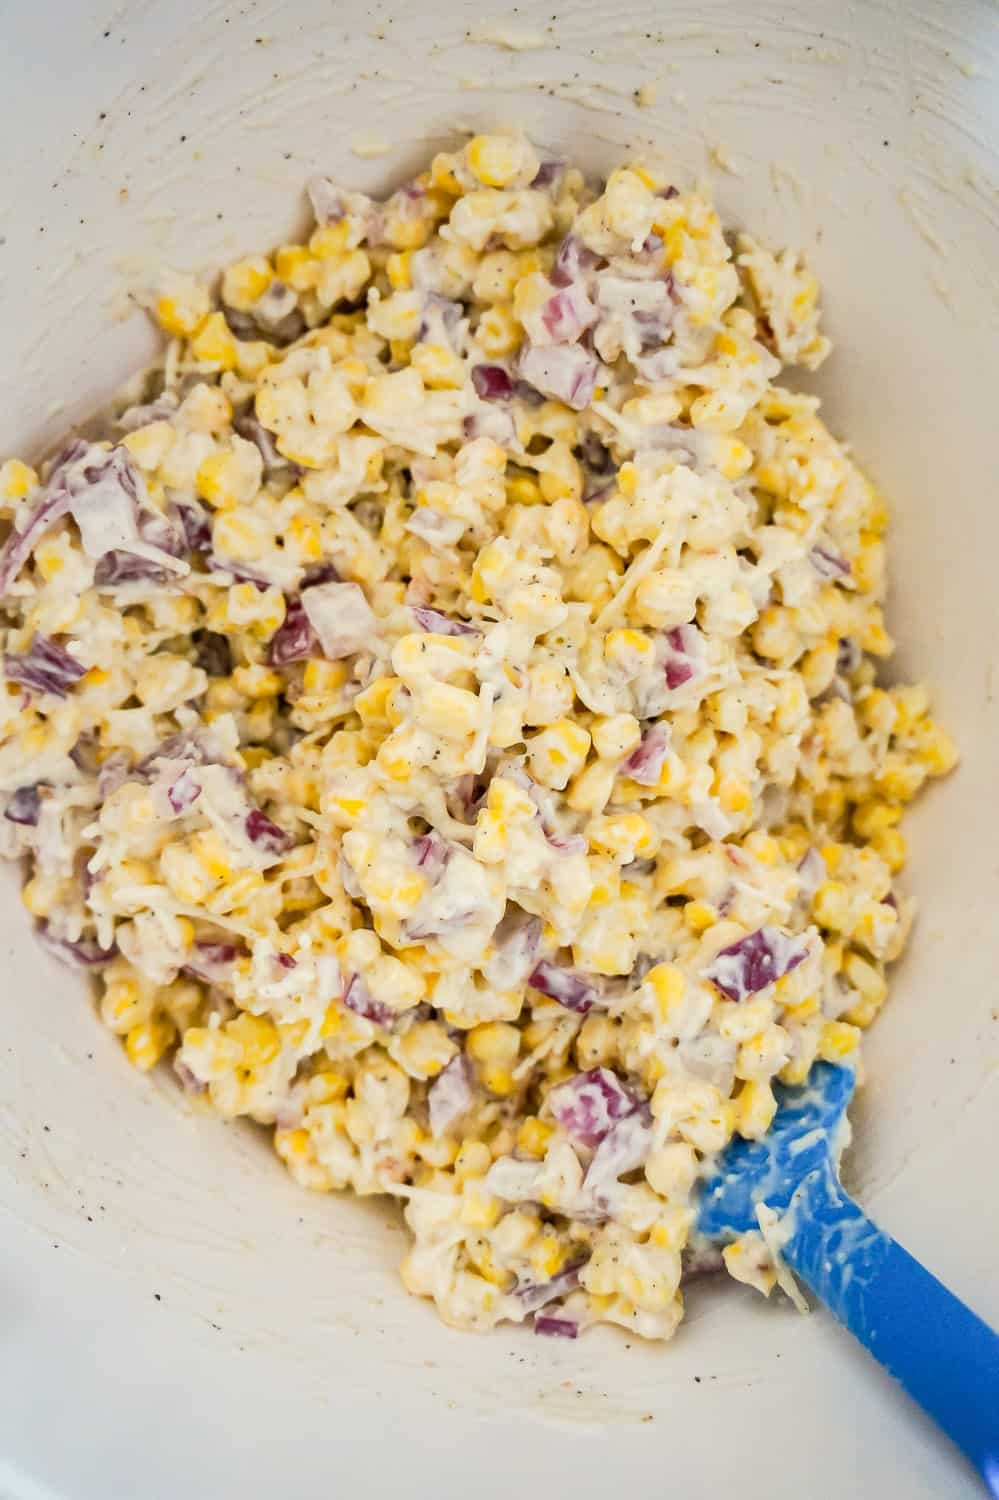 corn, red onions and cream soup mixture in a mixing bowl